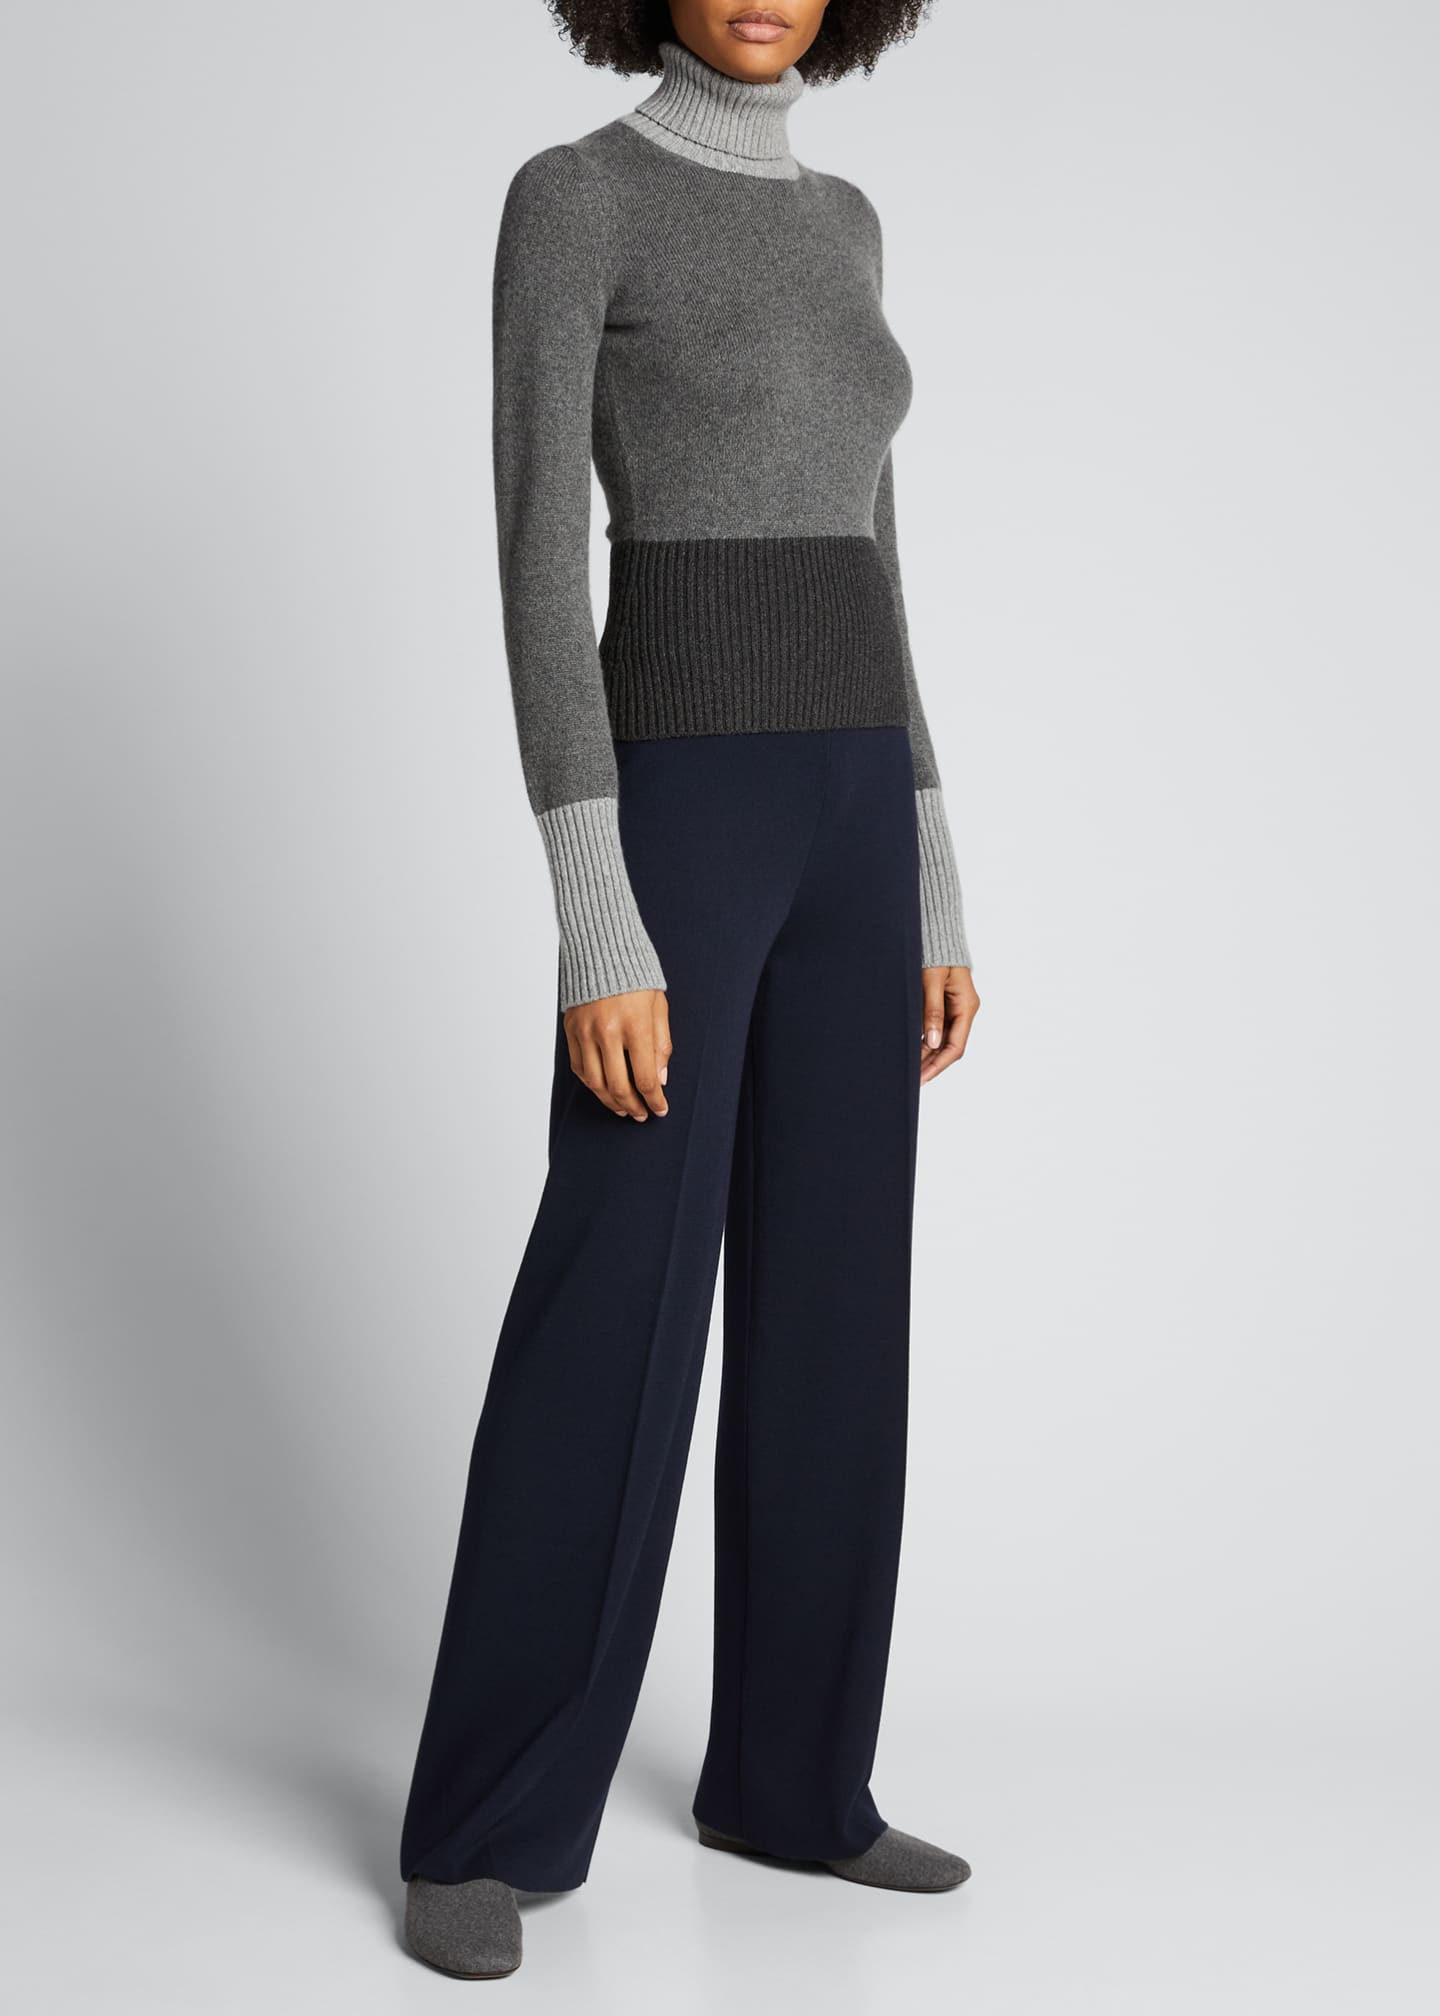 Image 1 of 5: Wall Street Colorblock Turtleneck Sweater